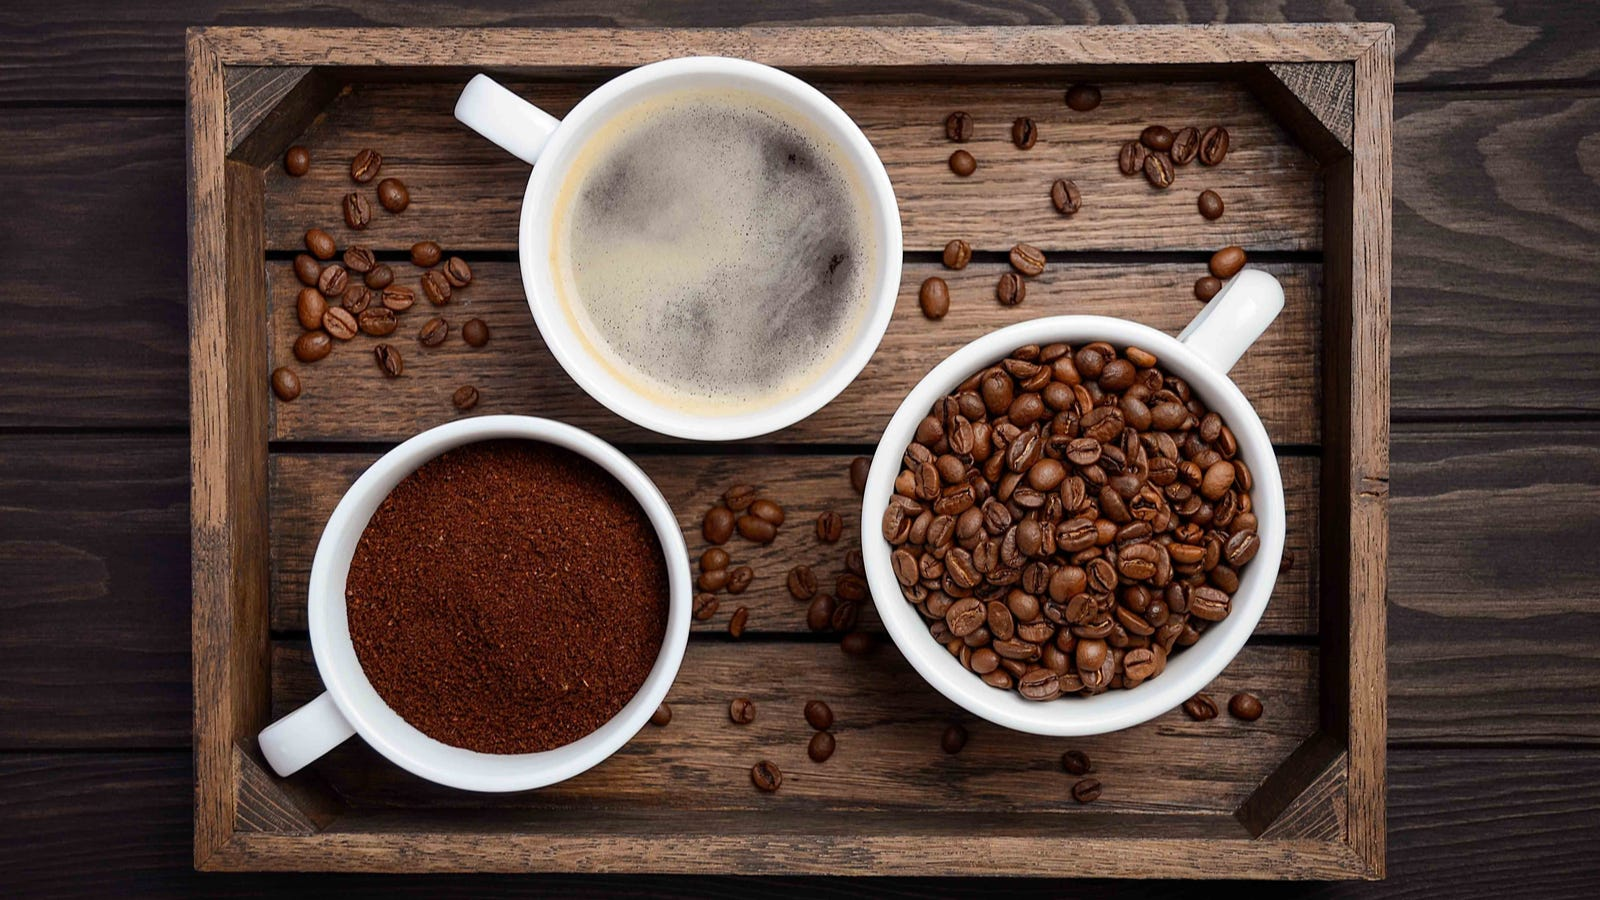 Three coffee cups, one filled with coffee beans one filled with coffee and one with grounds.